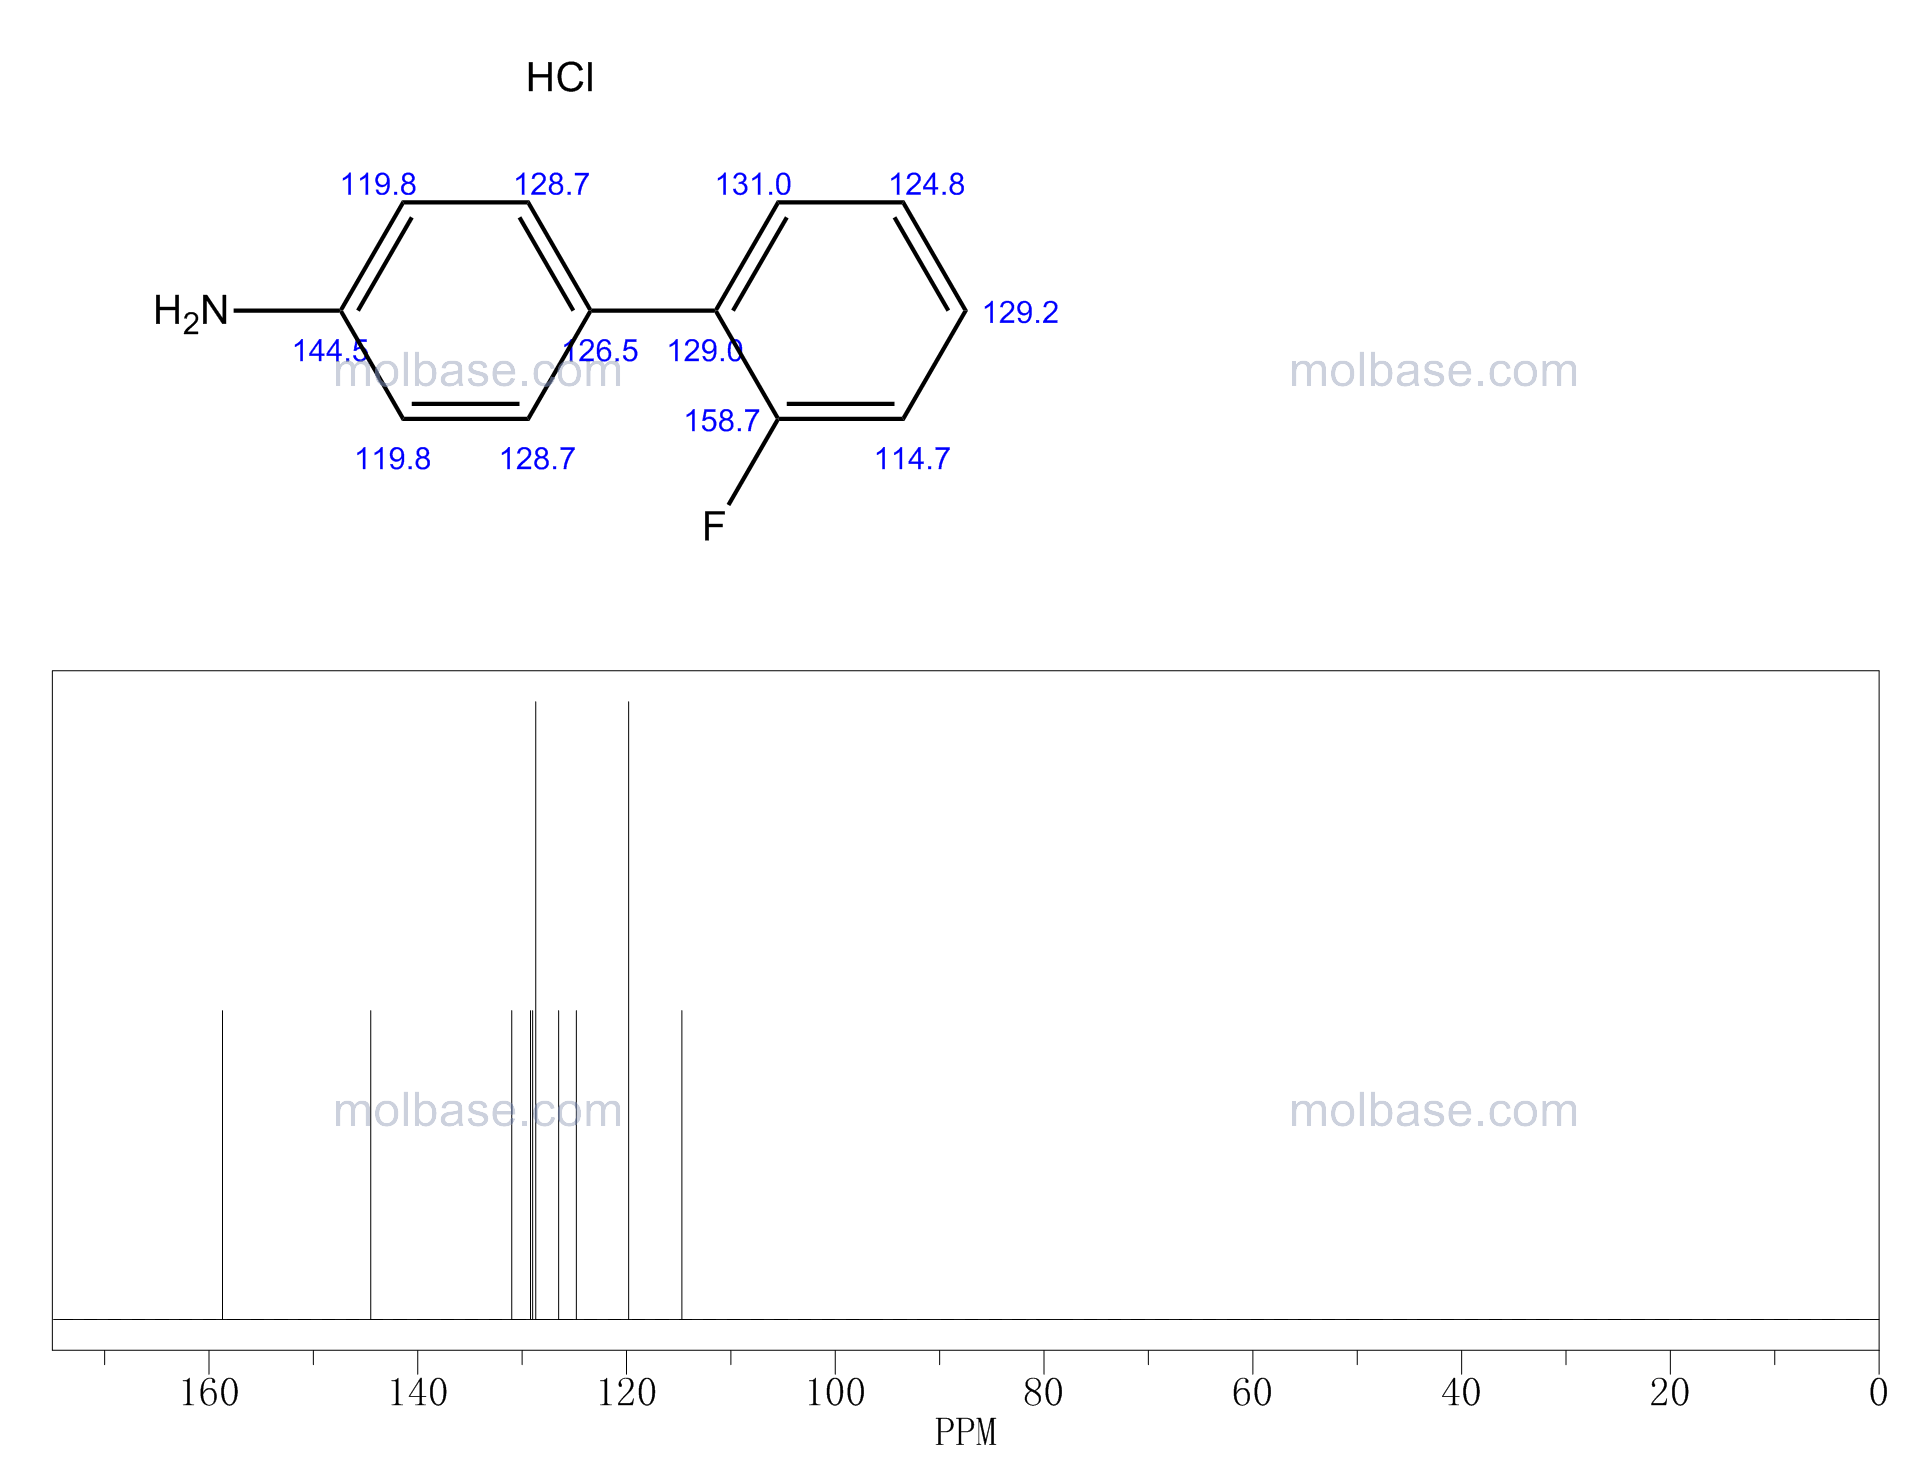 4-(2-fluorophenyl)aniline,hydrochloride NMR spectra analysis, Chemical CAS NO. 321-61-9 NMR spectral analysis, 4-(2-fluorophenyl)aniline,hydrochloride C-NMR spectrum